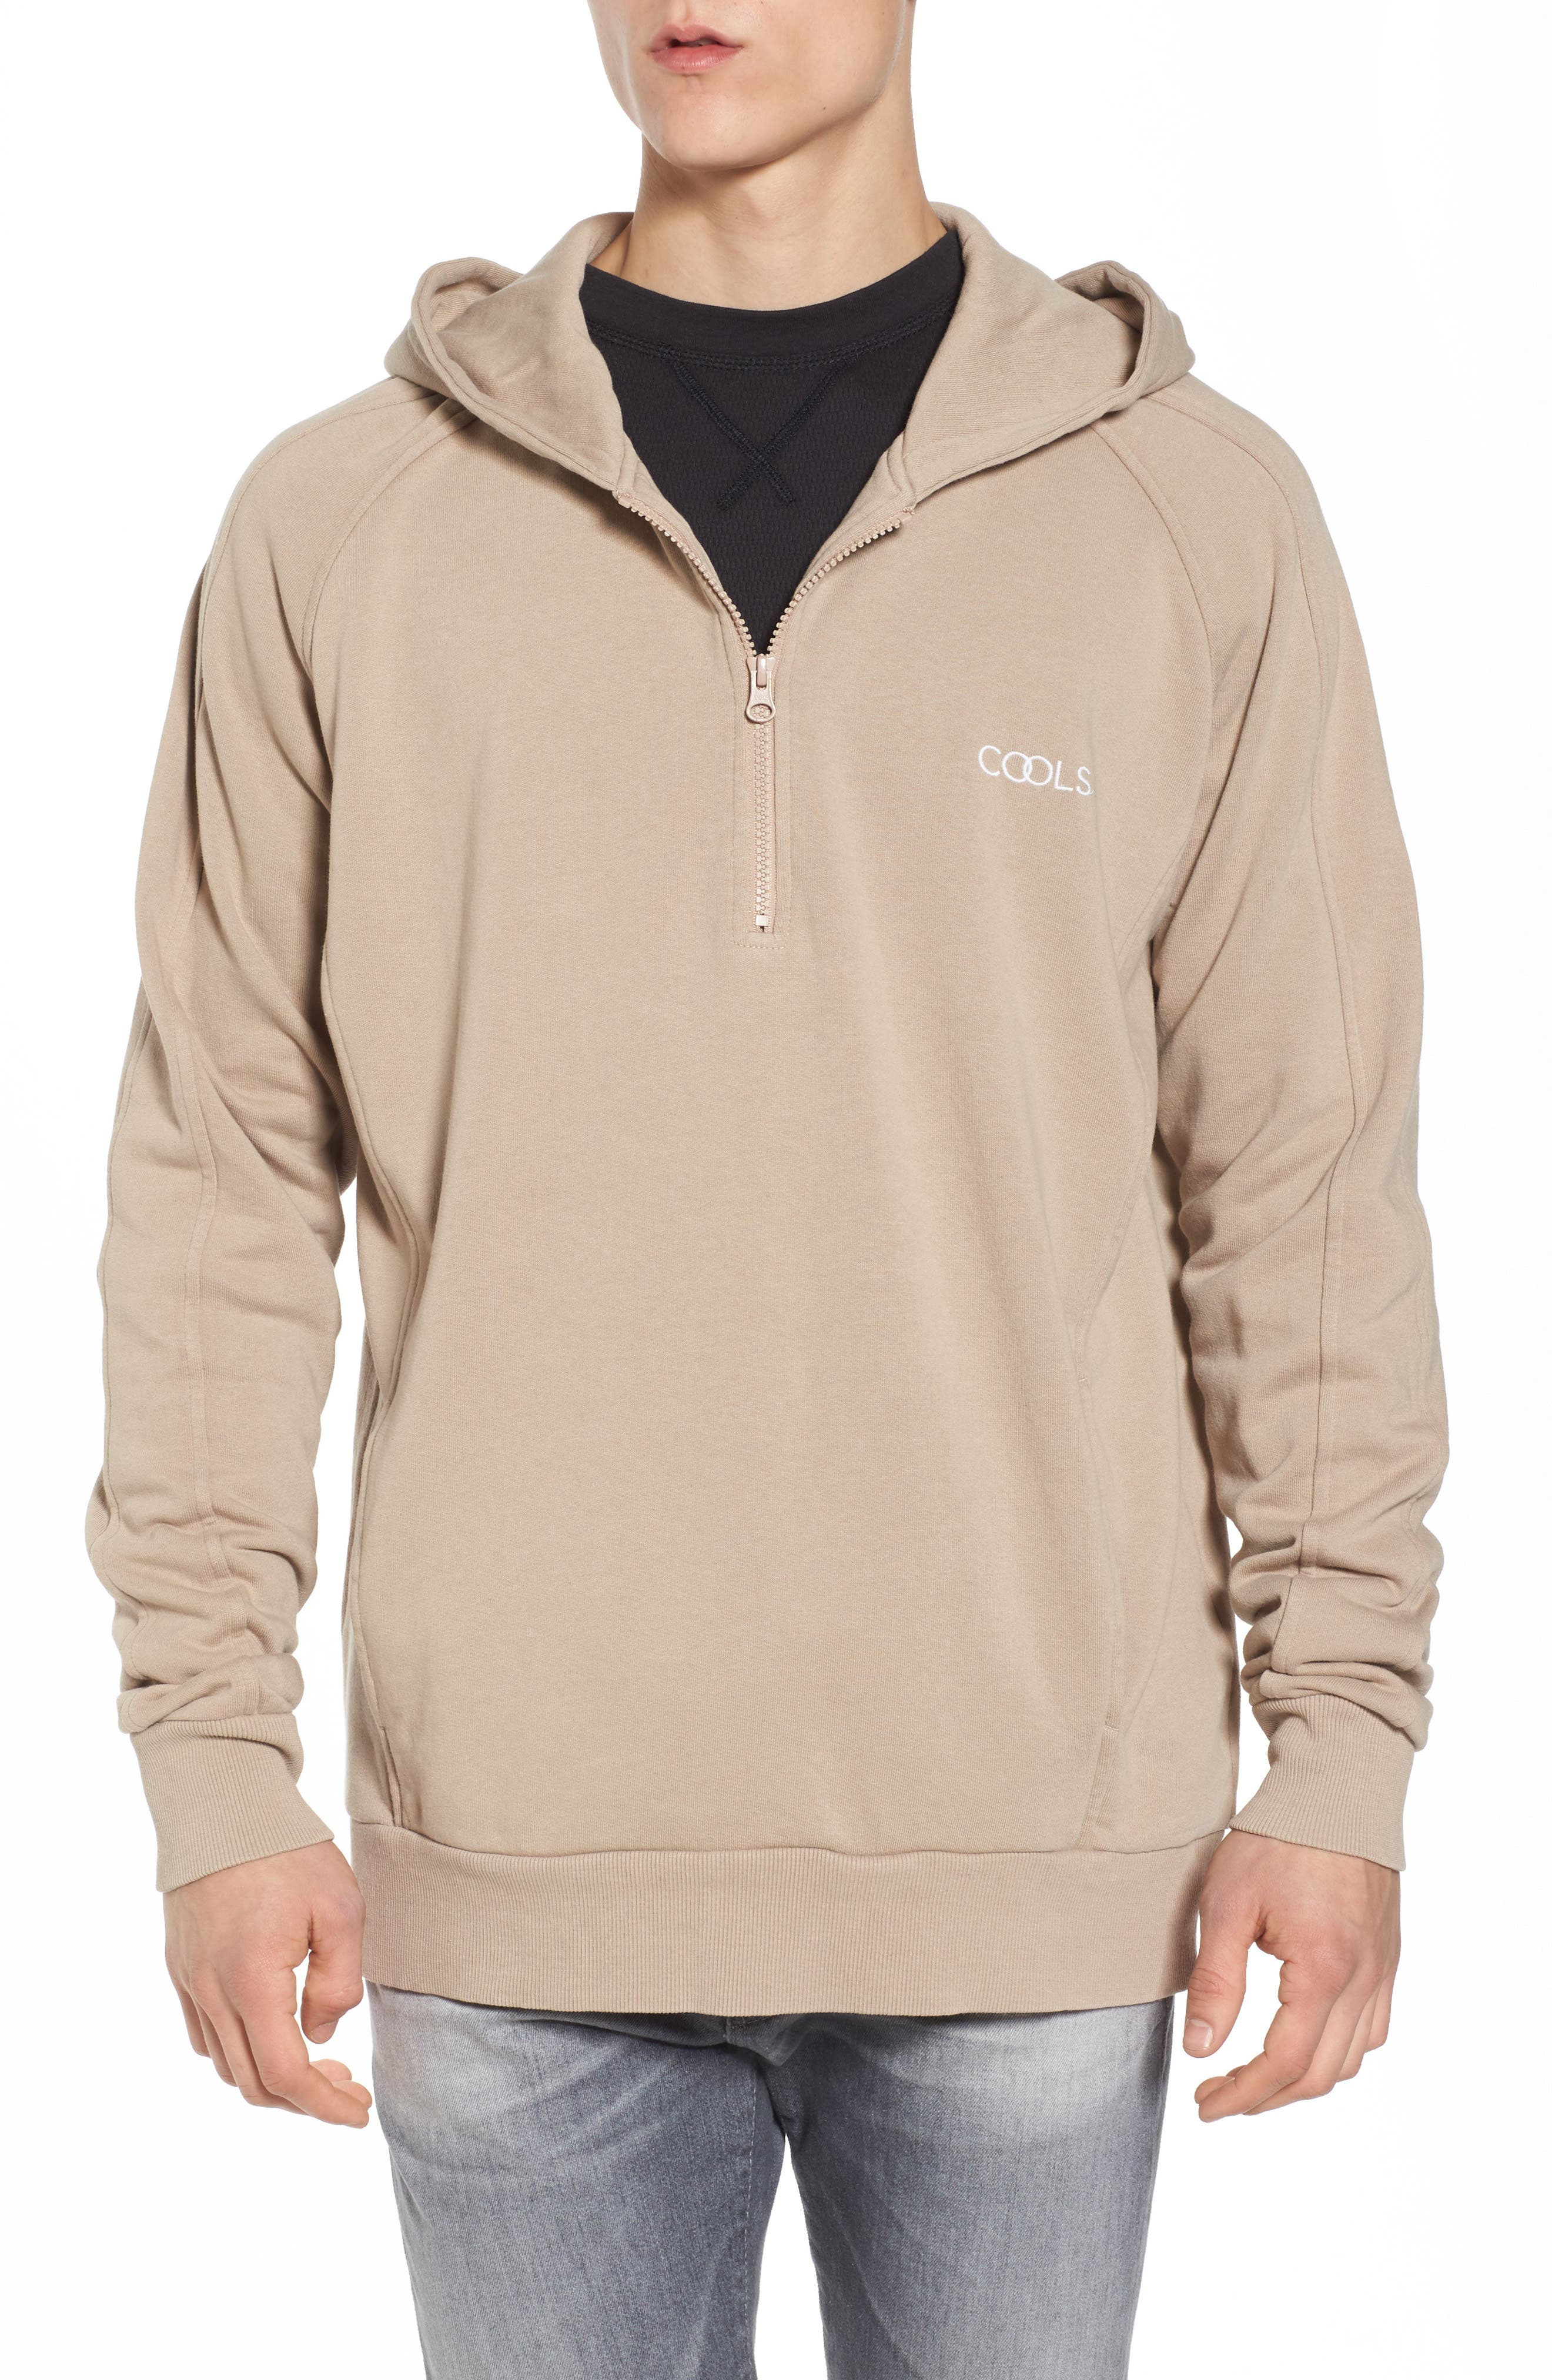 Olympic Zip Pullover Hoodie,                             Main thumbnail 1, color,                             260